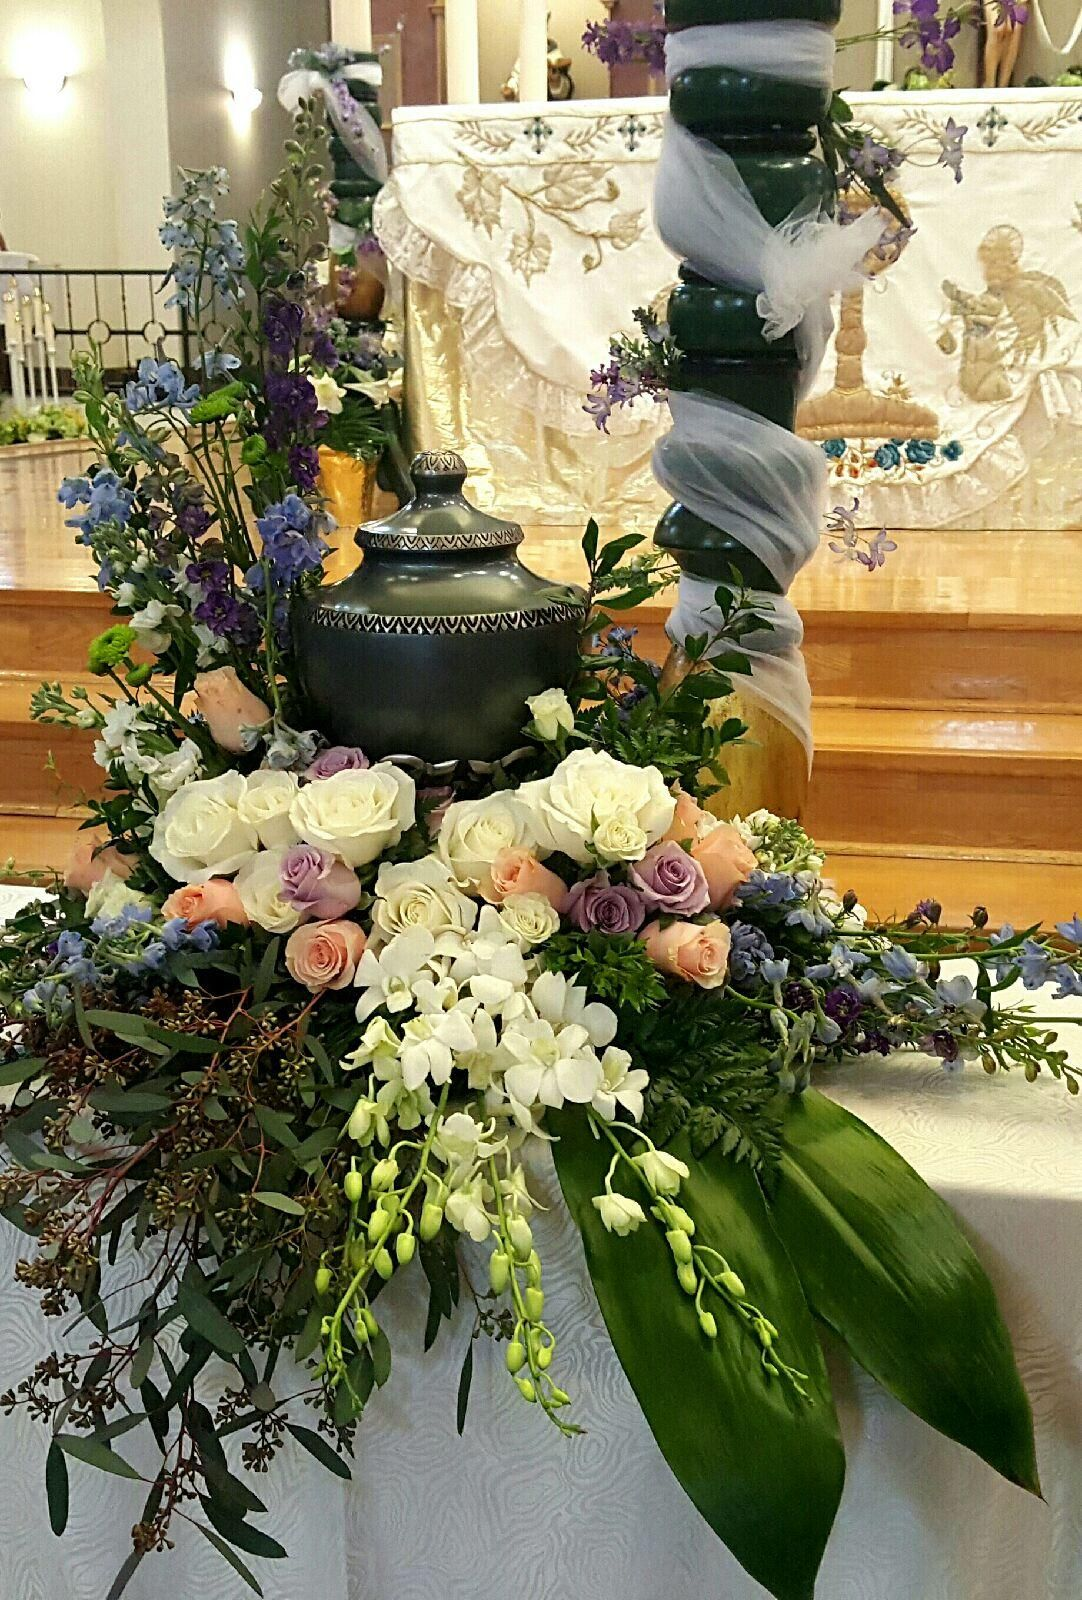 Thompsons flower shop cremation urn and floral arrangement thompsons flower shop cremation urn and floral arrangement izmirmasajfo Images